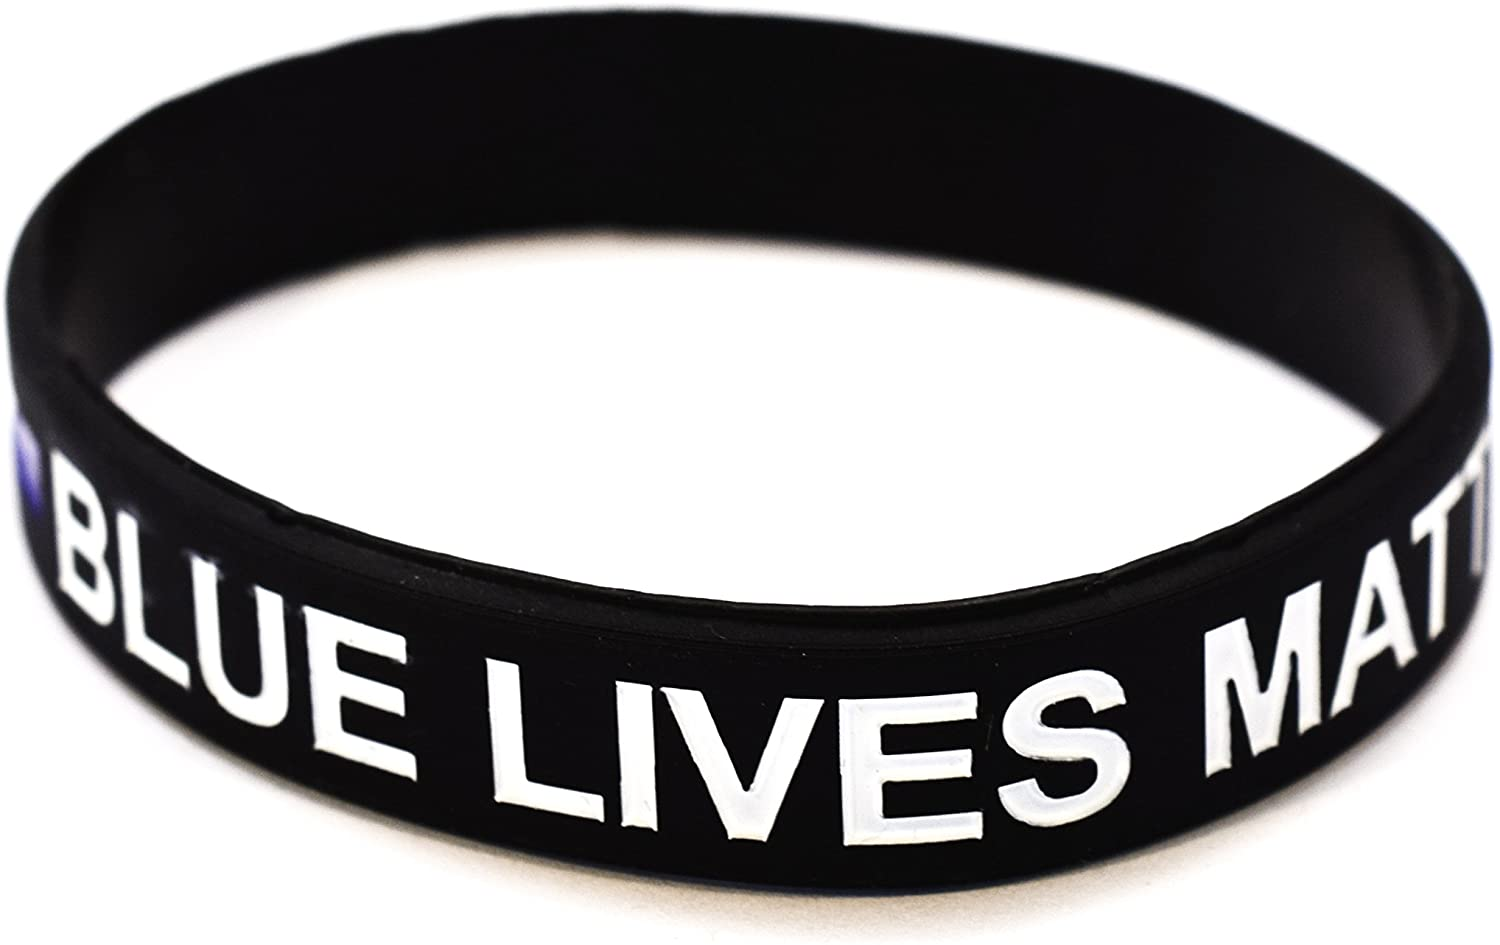 Blue Lives Matter Wristbands with Thin Blue Line